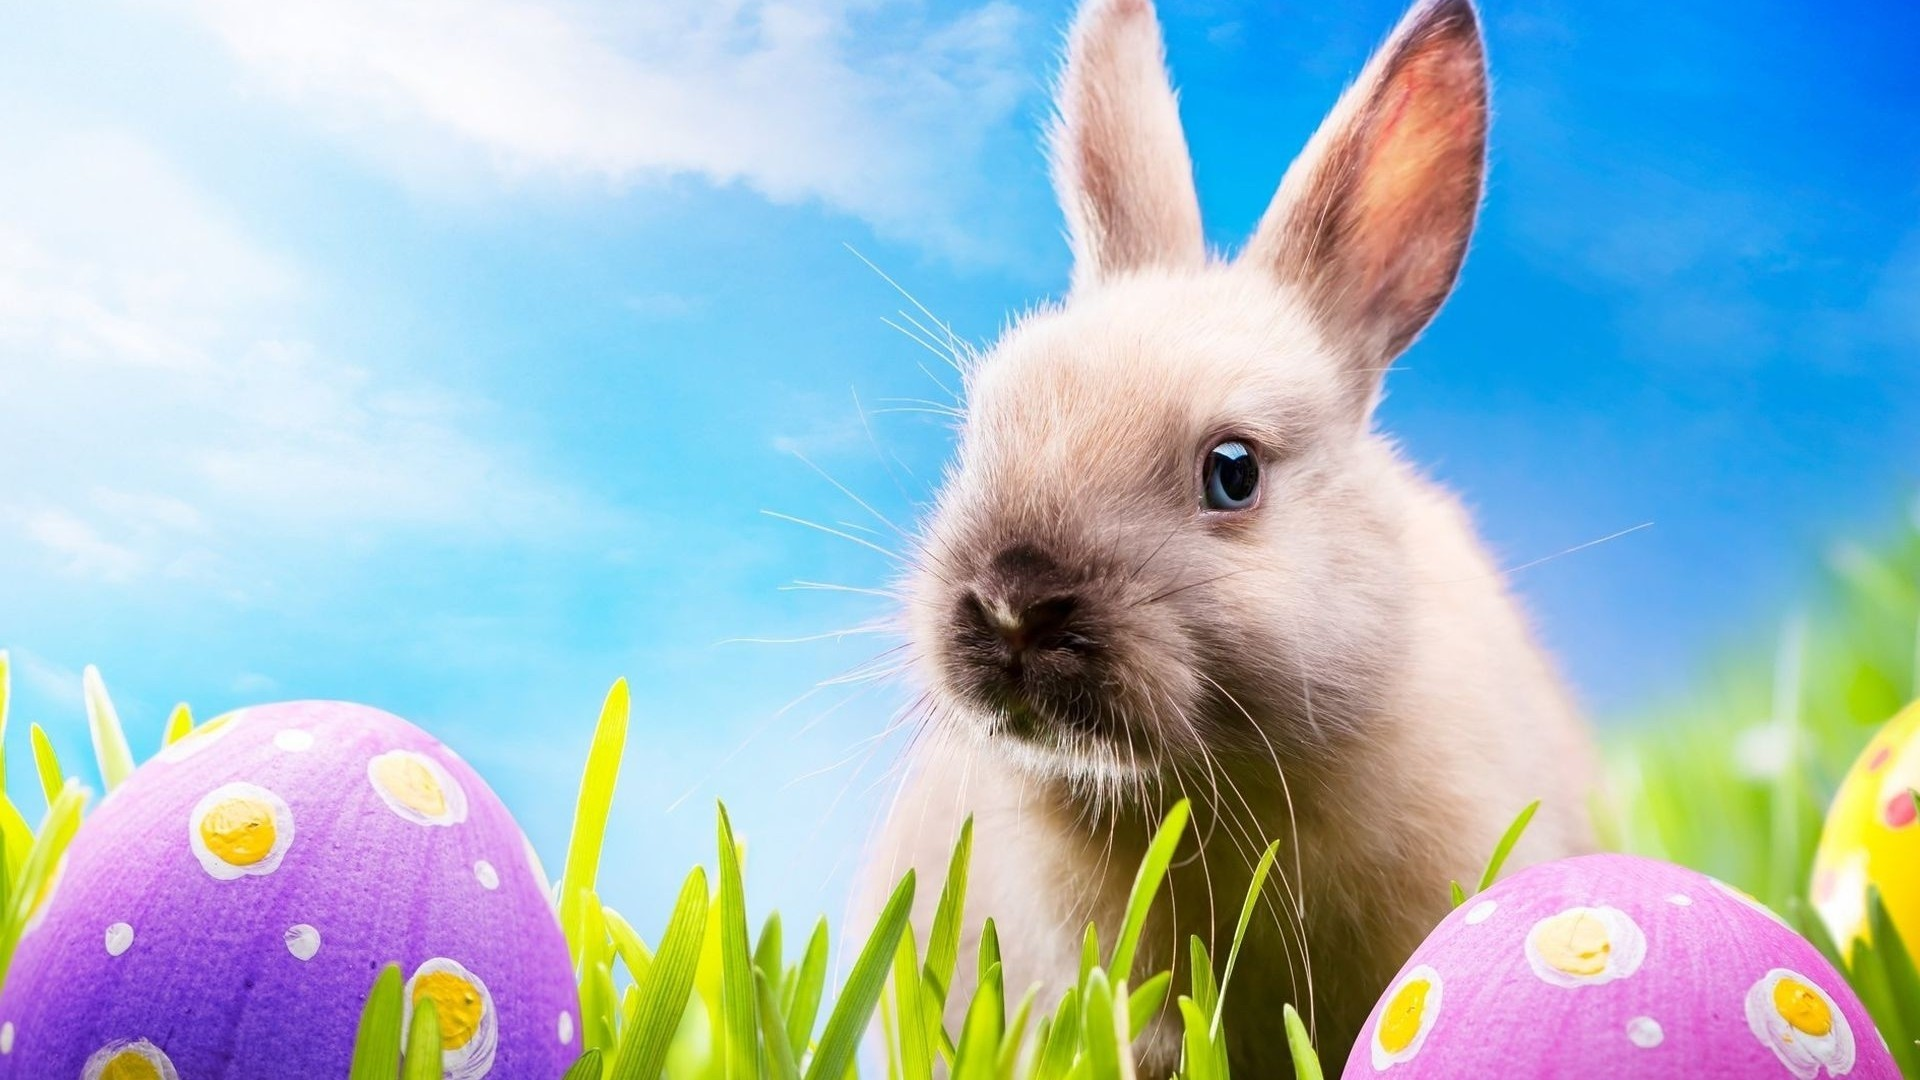 Cute Easter Bunny 2015 Desktop   New HD Wallpapers 1920x1080